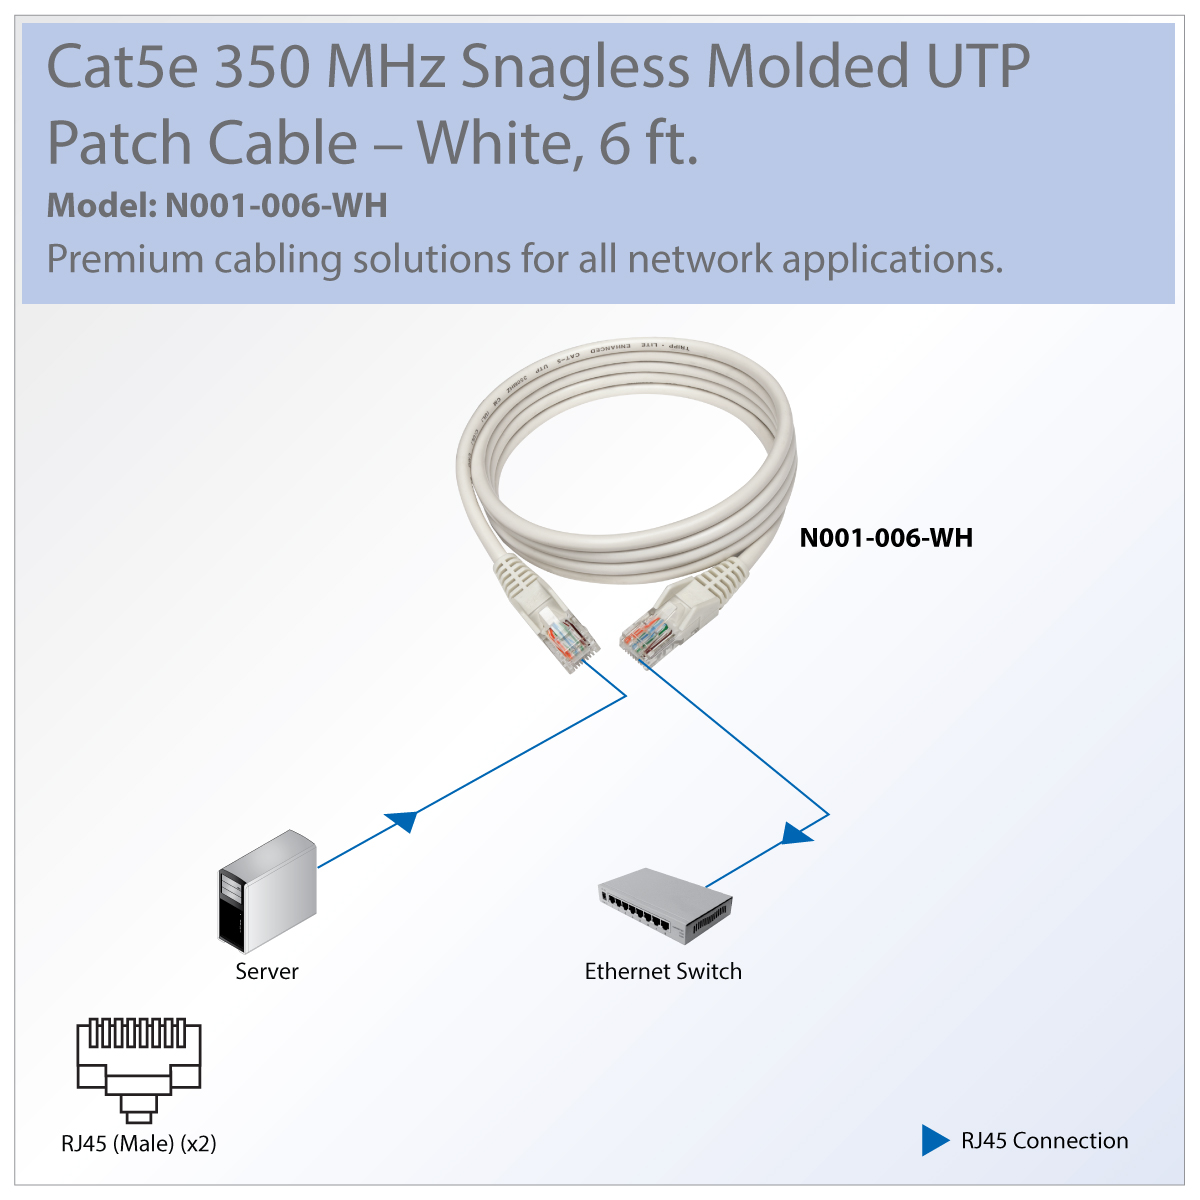 Tripp Lite Cat5e Blue Ethernet Patch Cable Snagless Molded Boot 15 Foot Part 350 Mhz Utp Rj45 M White 6 Ft Category 5e For Computer Server Printer Photocopier Router Blu Ray